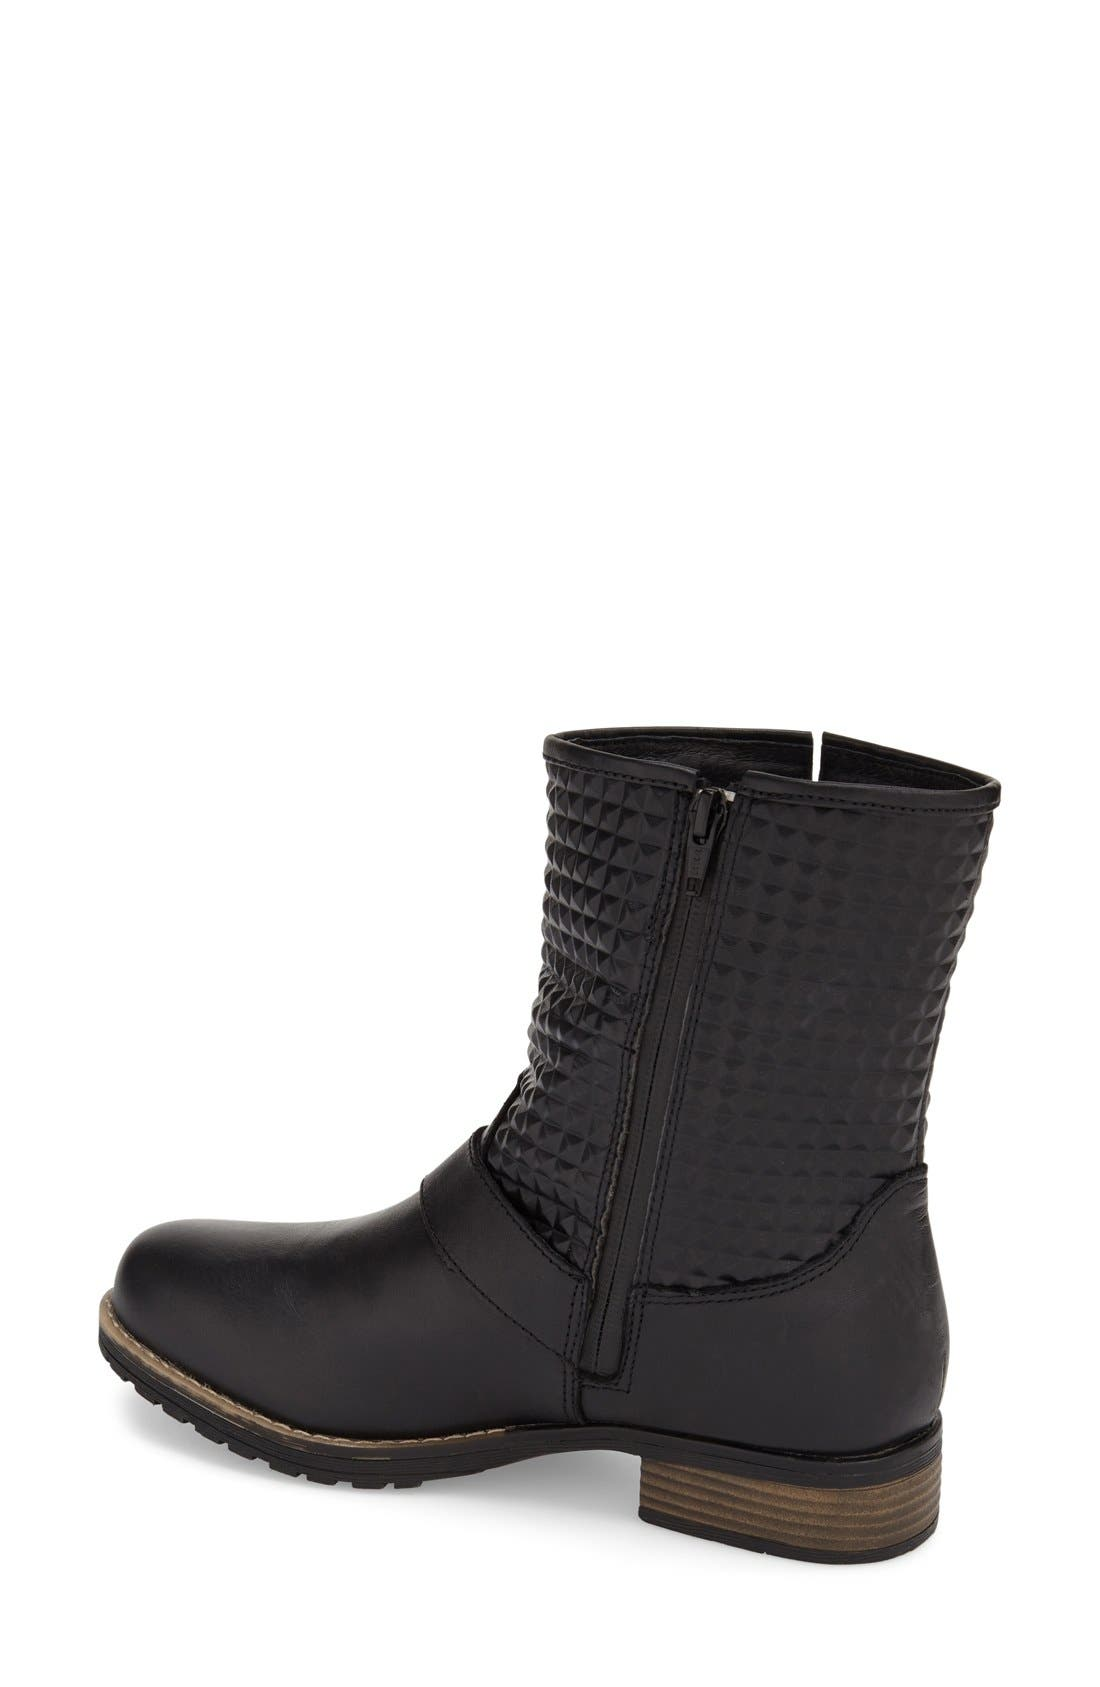 'Granada' Waterproof Pyramid Studded Boot,                             Alternate thumbnail 4, color,                             BLACK